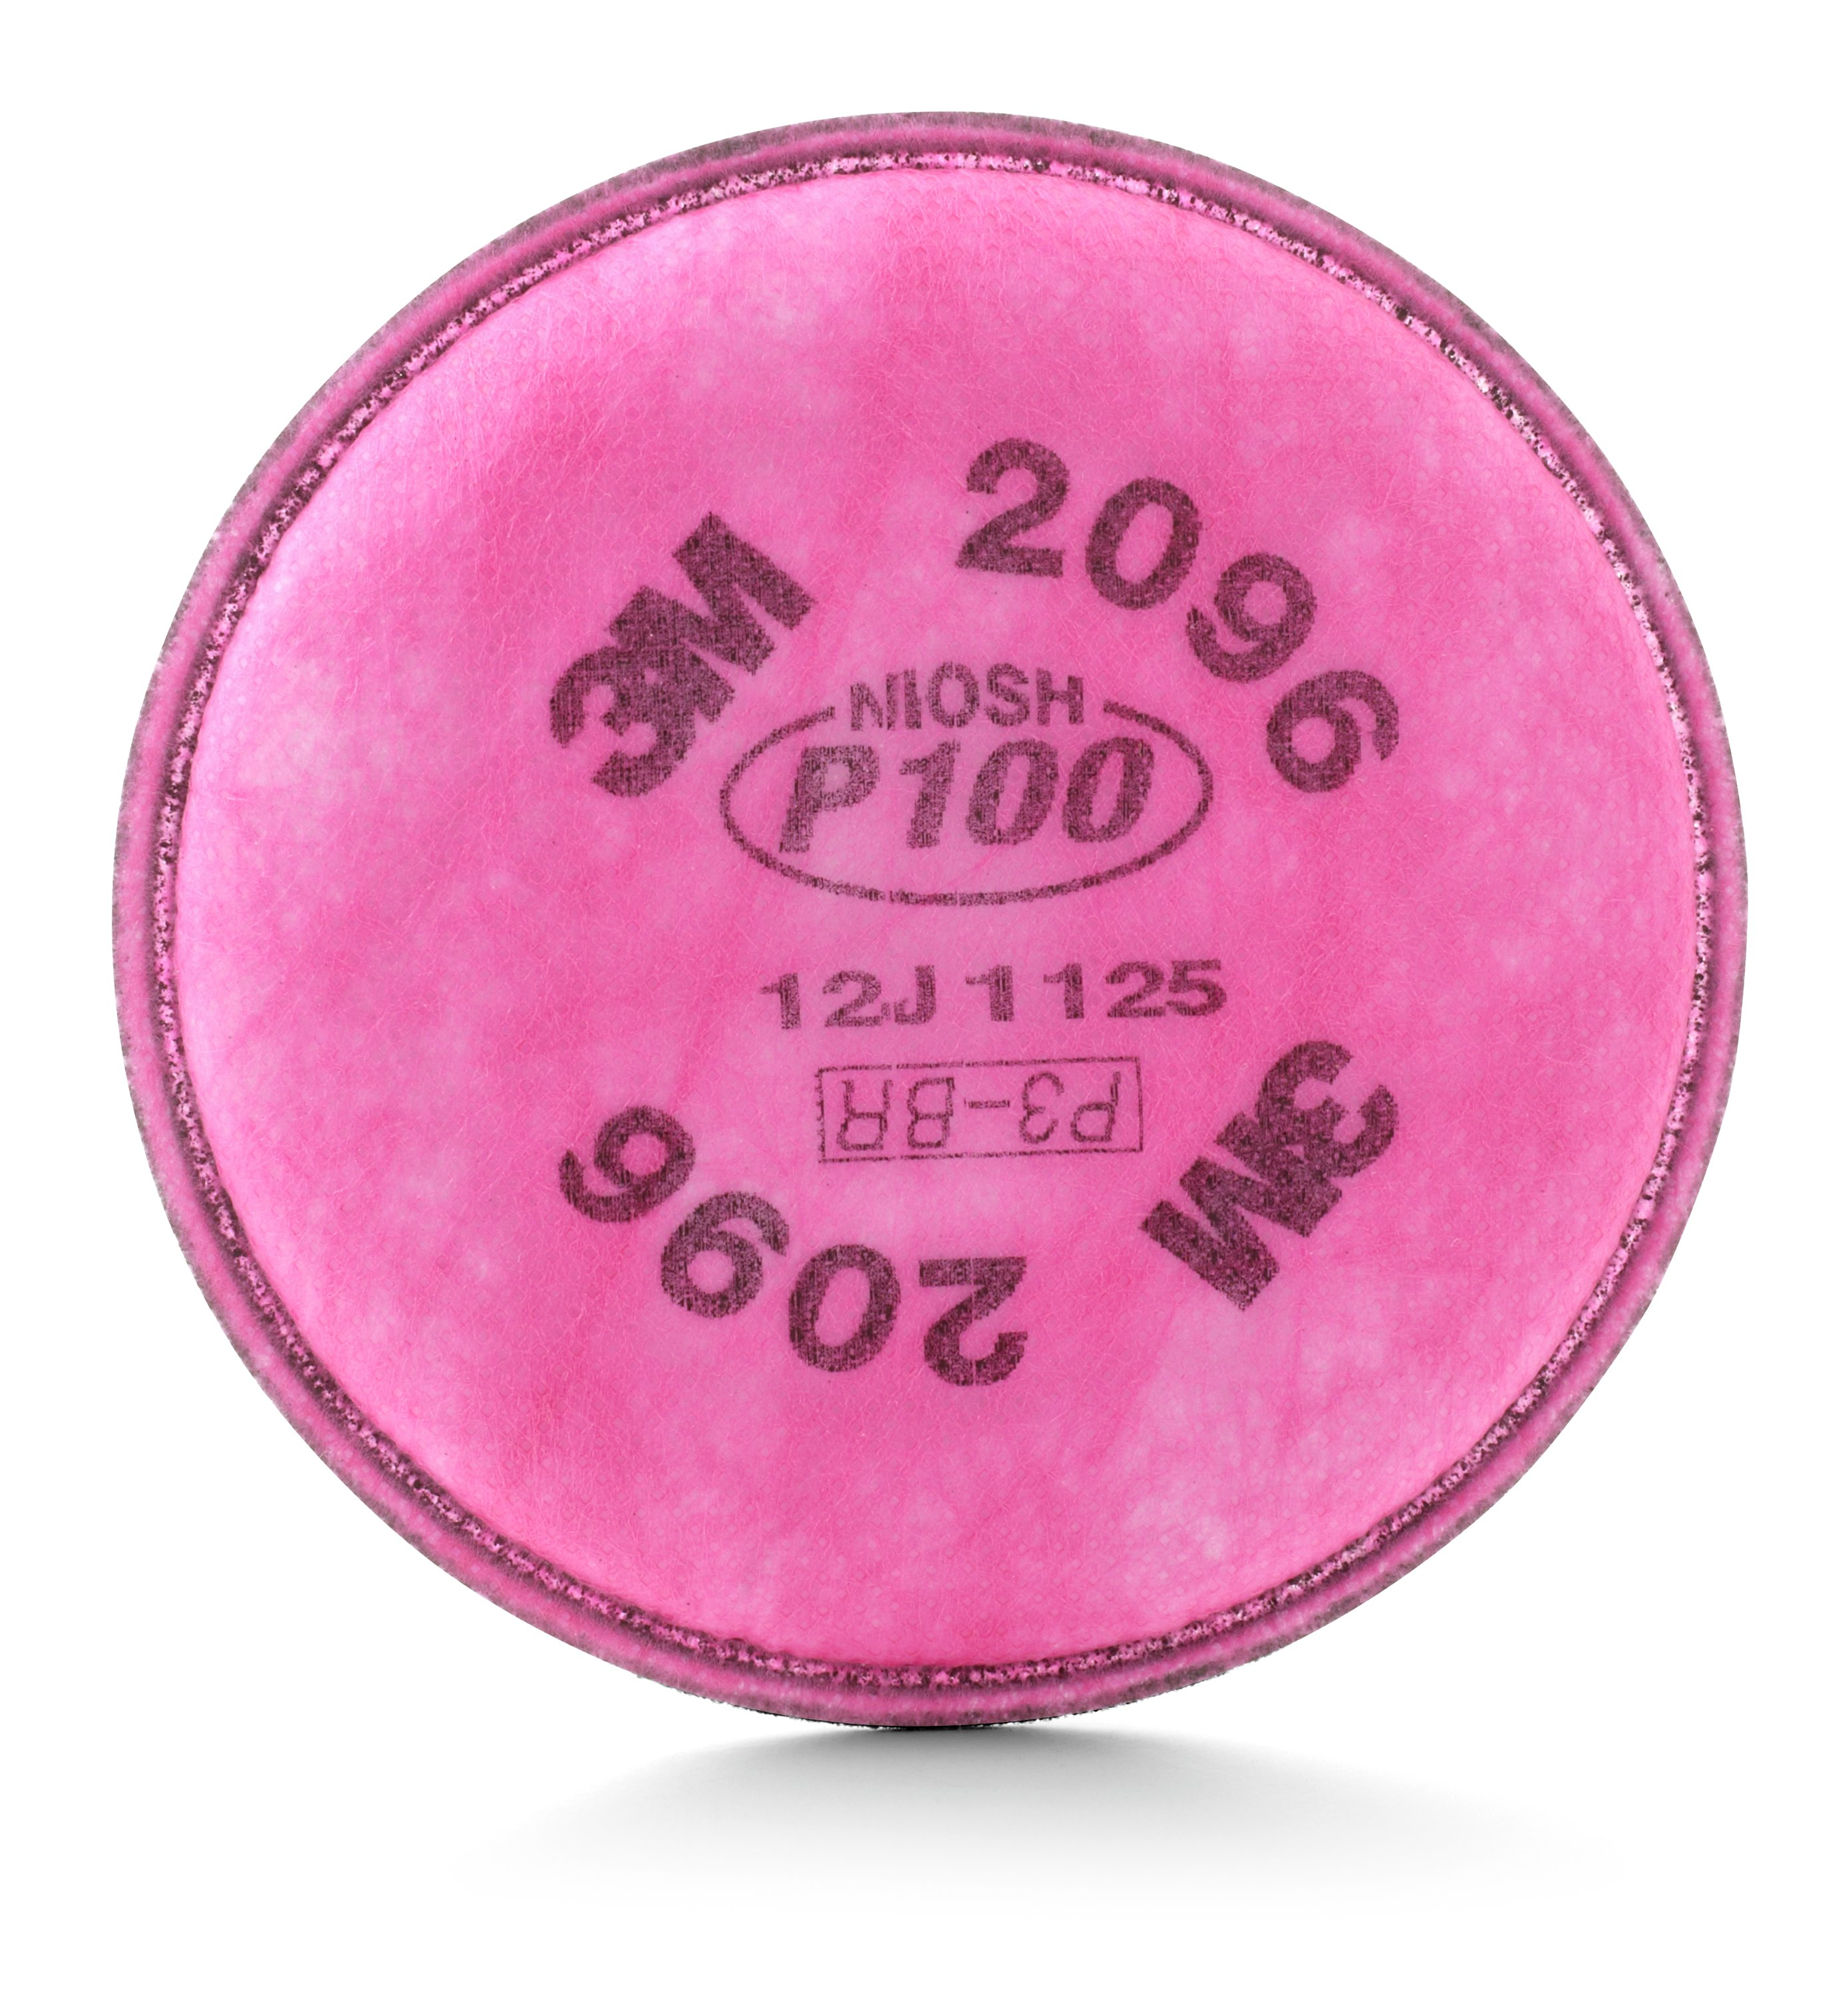 3M™ 051138-54295 Particulate Filter With Nuisance Level Acid Gas Relief, For Use With 3M™ 5000 Series Respirators, 6000 Series Cartridges with 502 Adapter and 6000/7000/FF-400 Series Facepieces with Bayonet Filter Holders, P100 Filter Class, Magenta